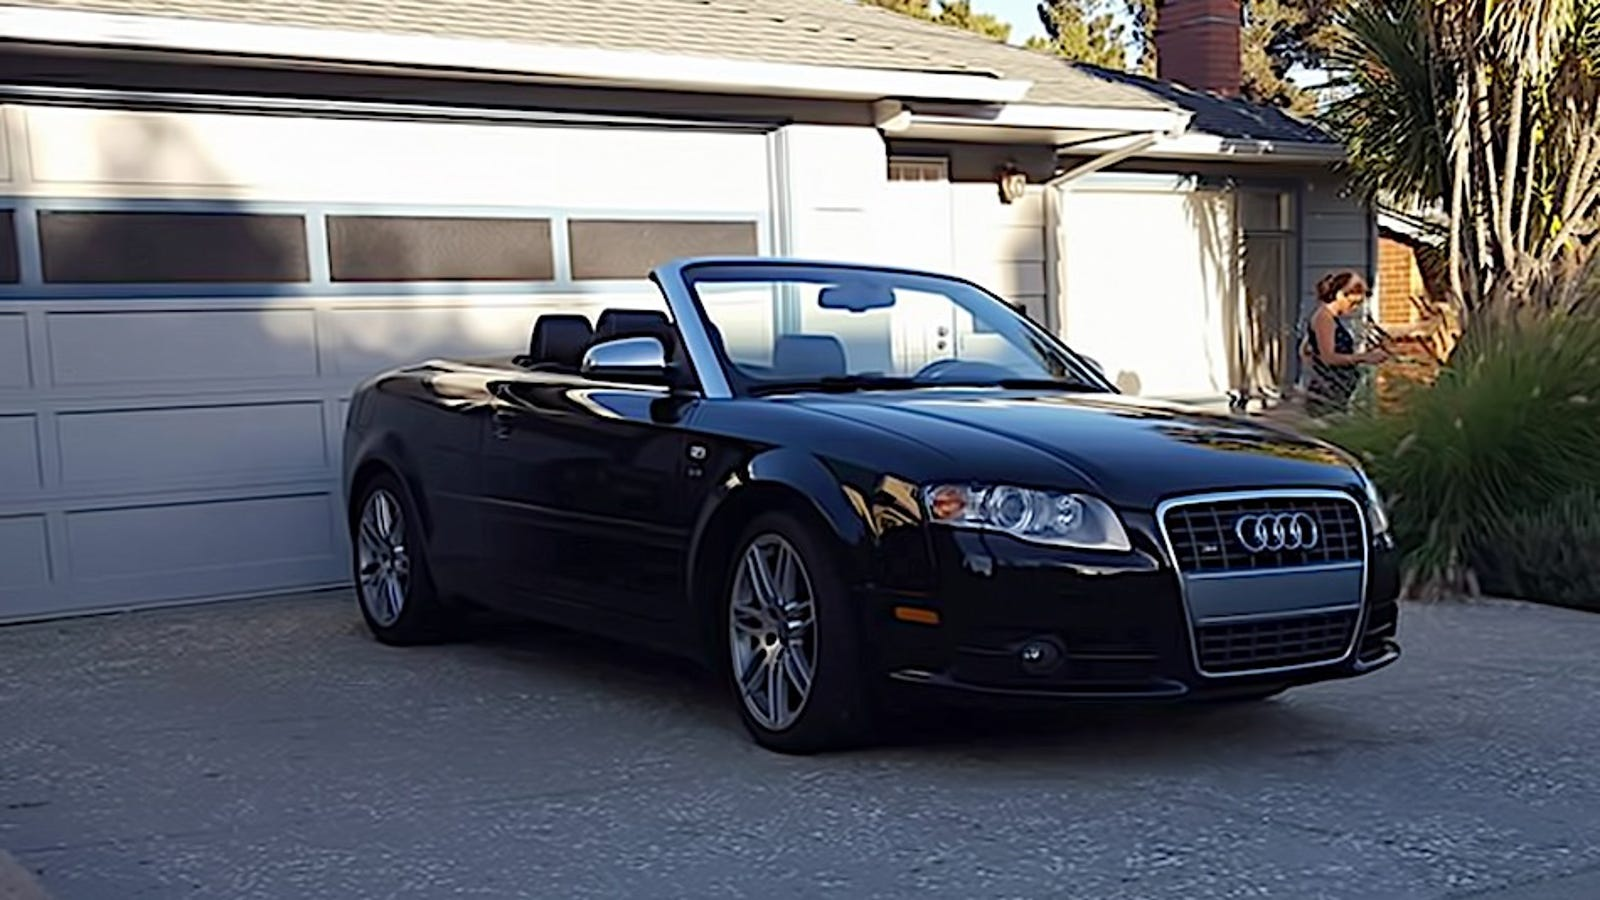 For $13,500, Could This 2008 Audi S4 Cabriolet Make You The Torque Of The  Town?